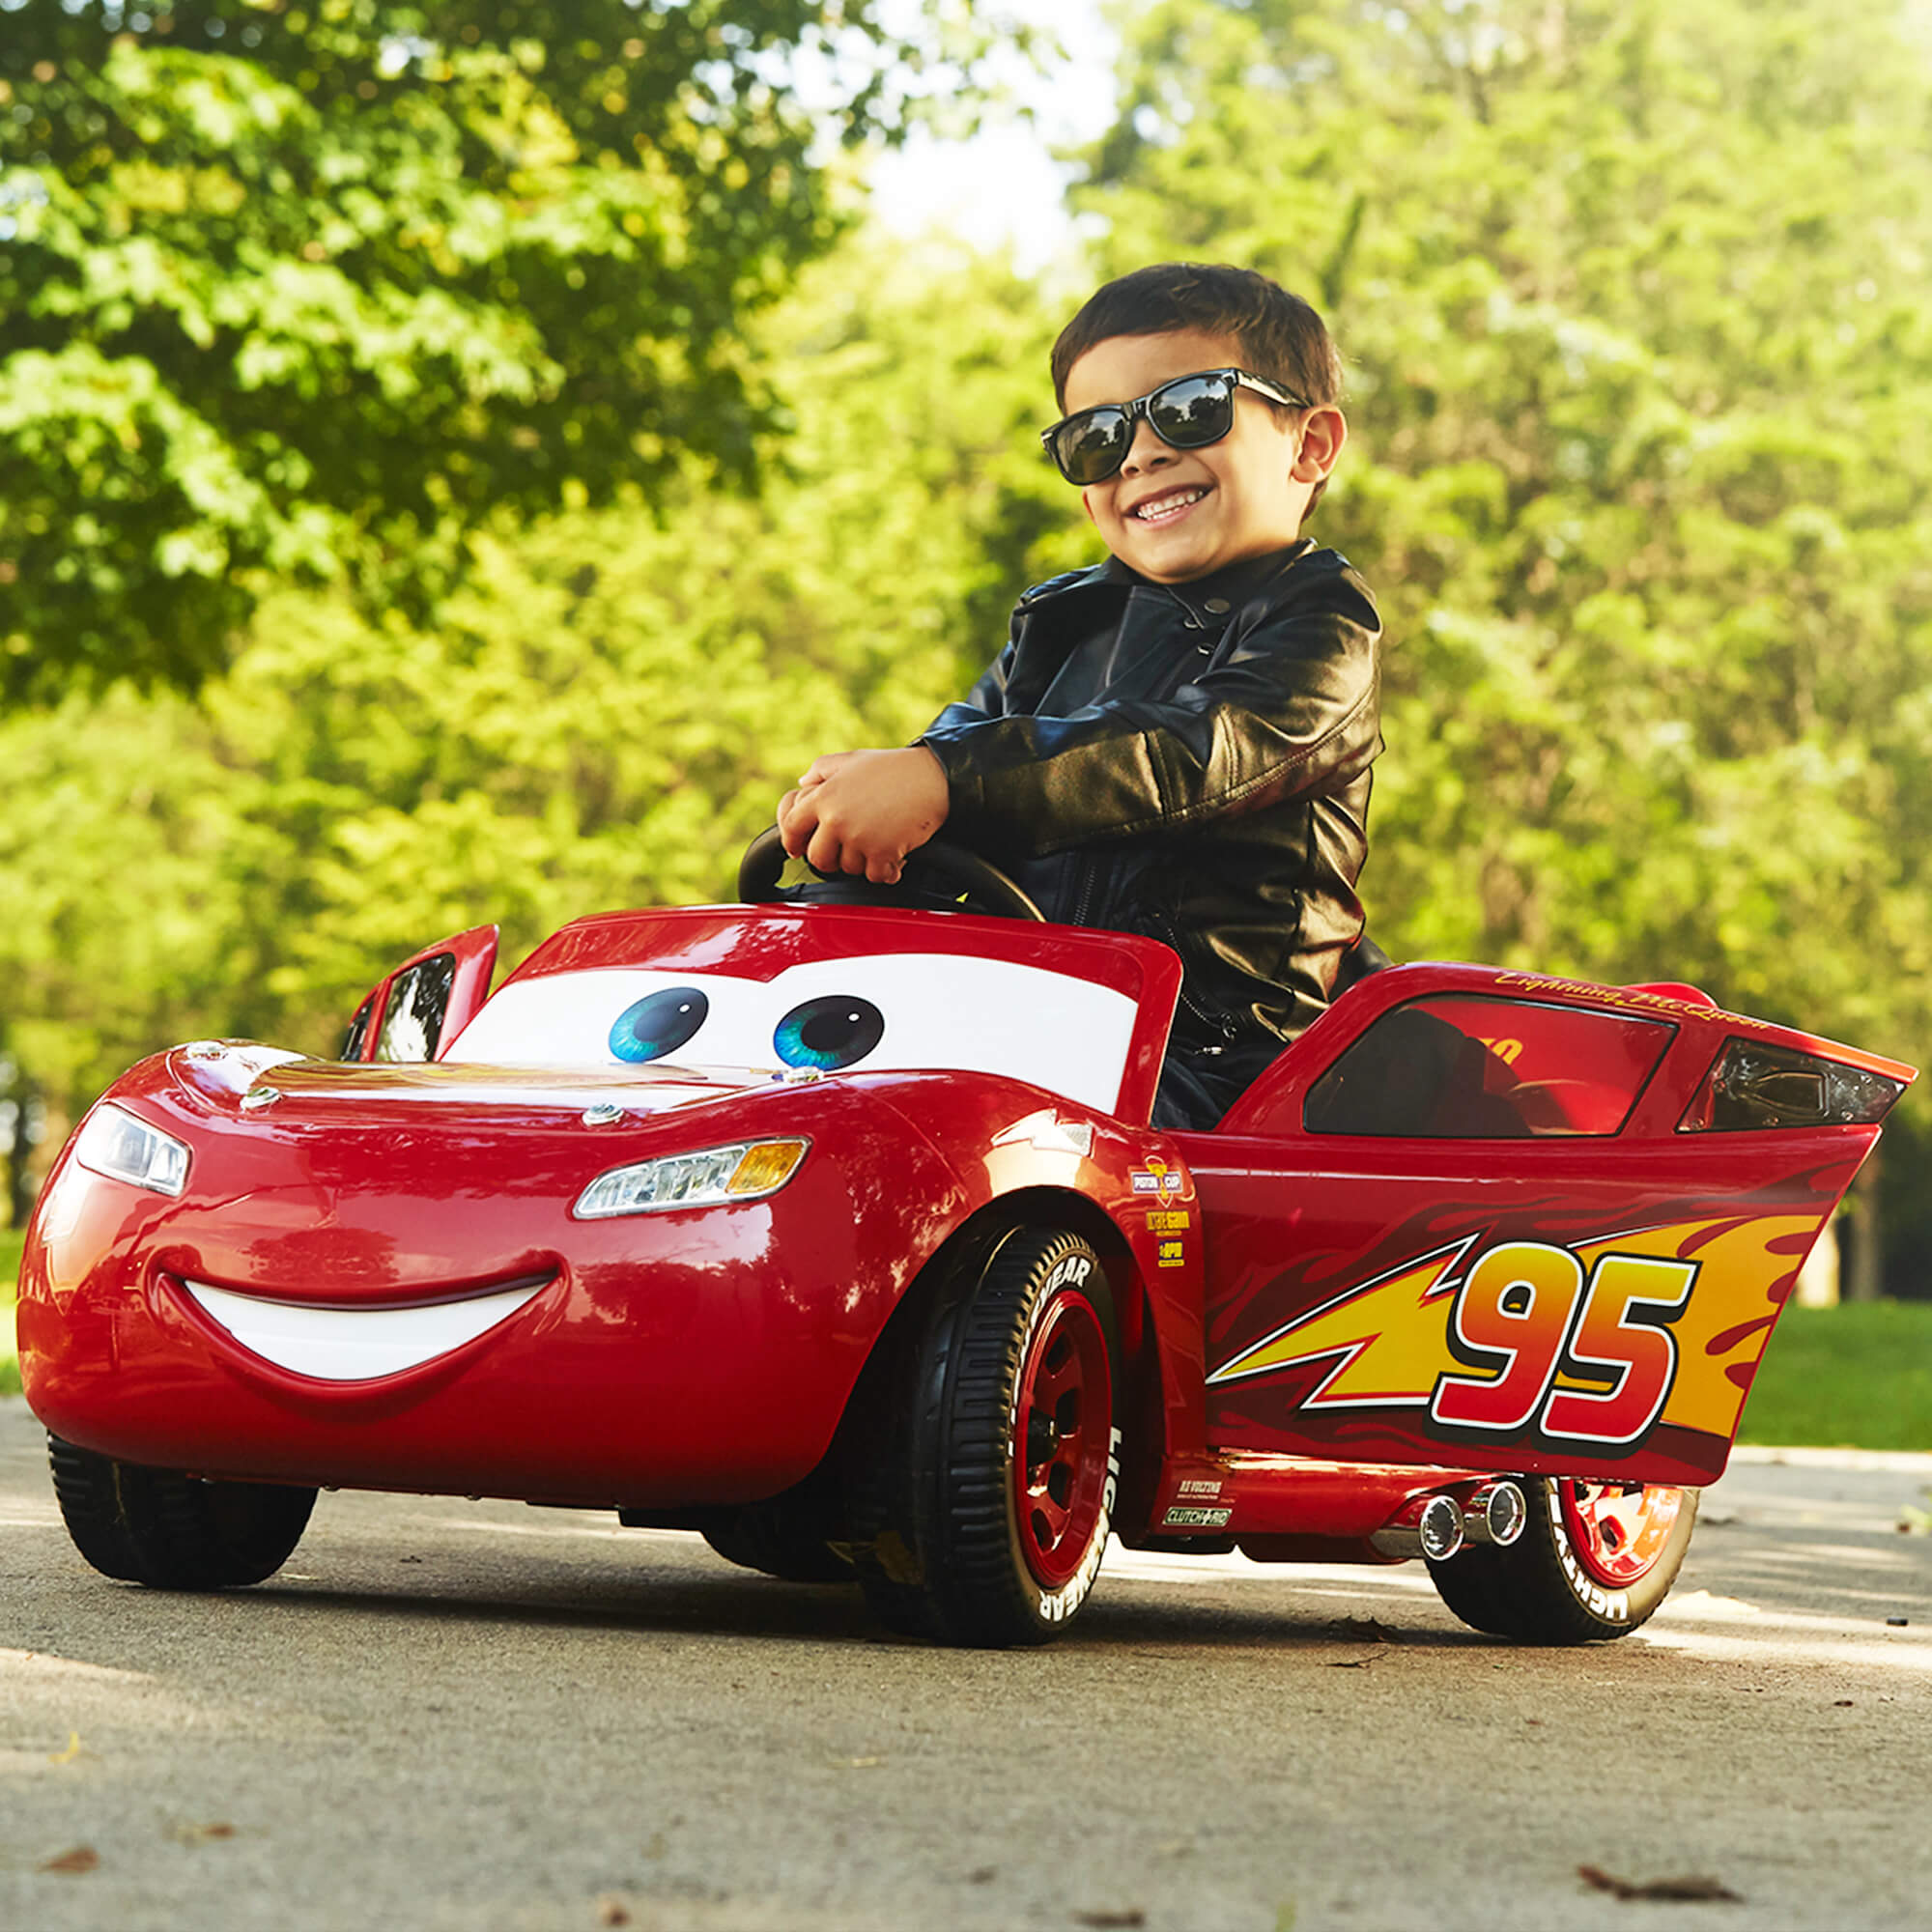 Disney Pixar Cars 3 Lightning McQueen 6V Battery-Powered Ride On by Huffy by Huffy